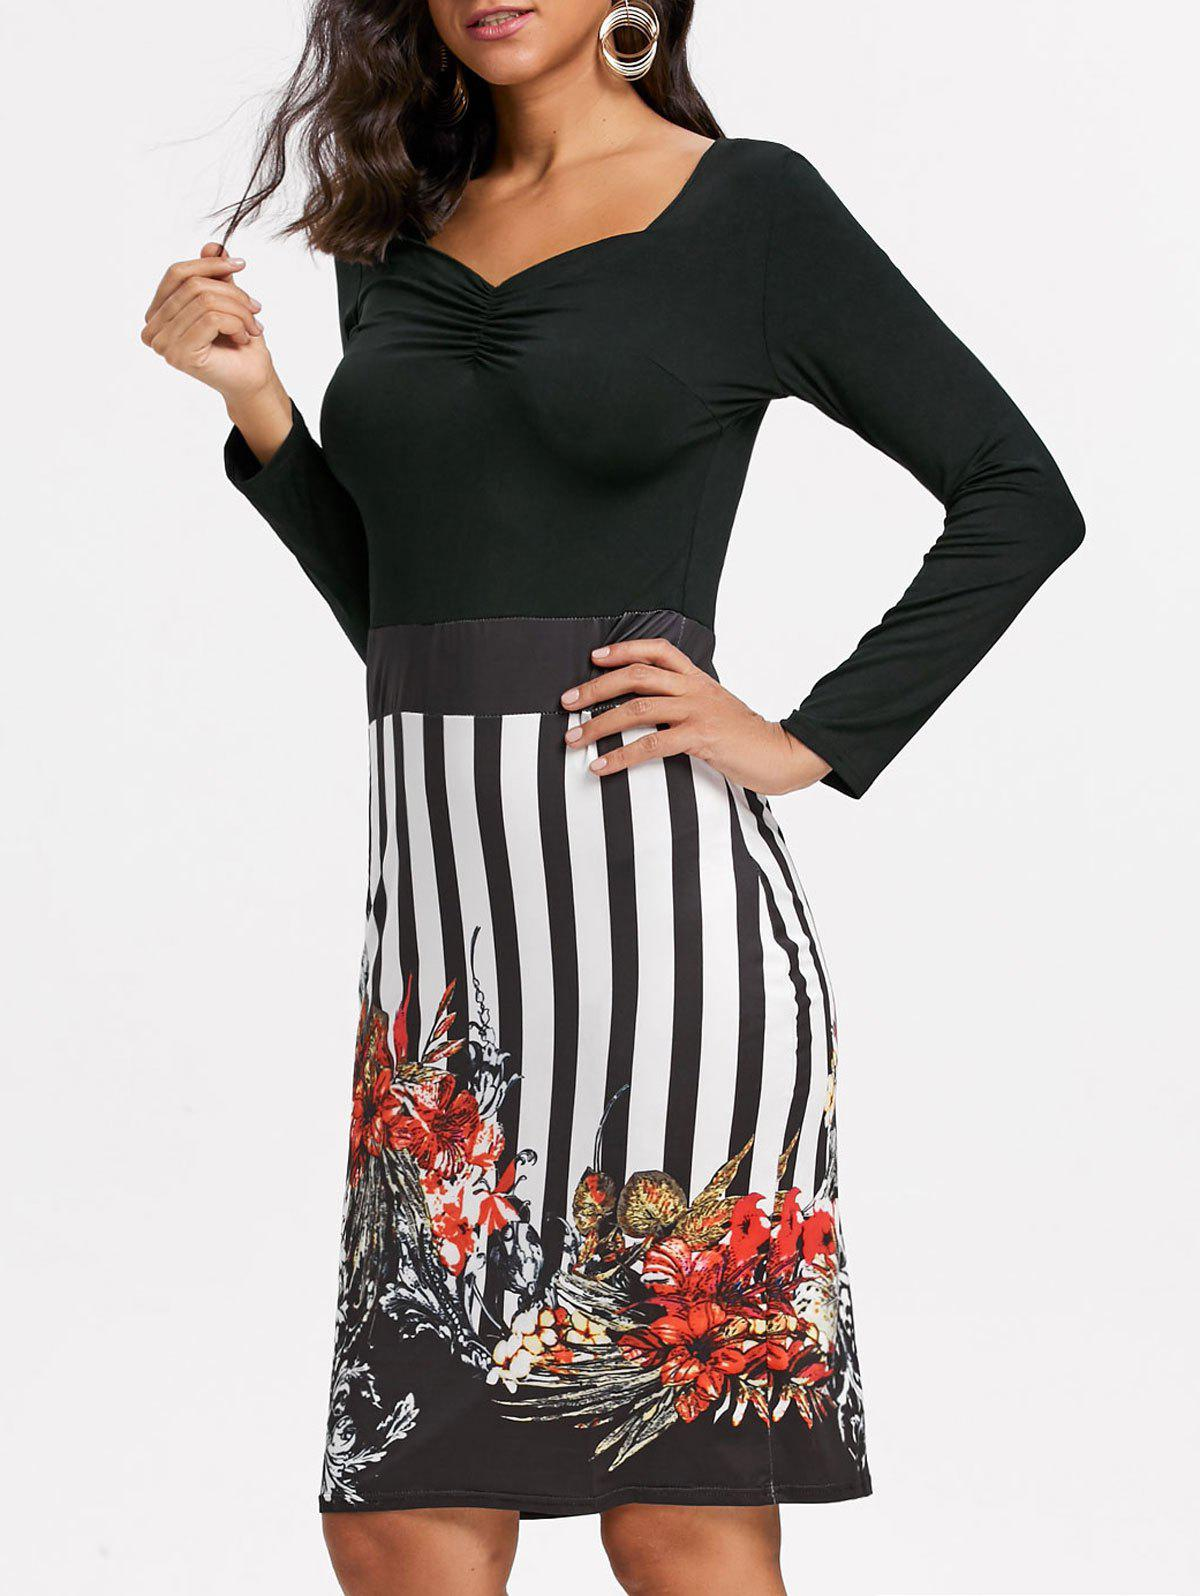 Stripe Floral Print Bodycon Dress - Noir M